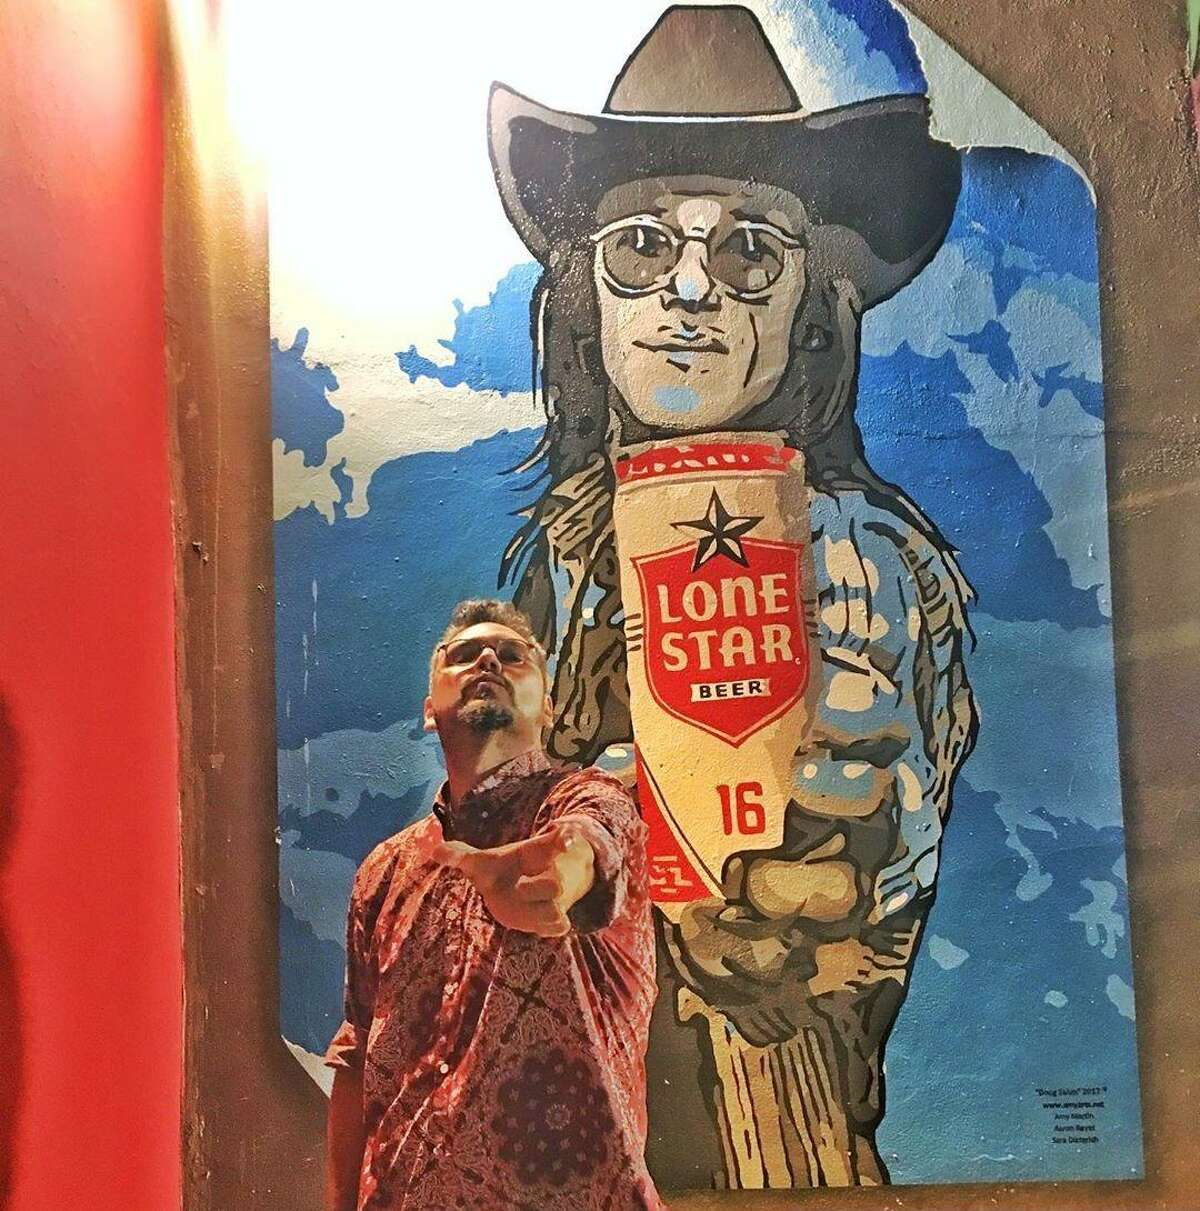 San Antonio native Miguel Bañuelos, 47, in front of Lone Star artwork. The New York City-based caterer, salsa maker and country DJ still drinks Lone Star at Manhattan dive bars and back home in San Antonio.